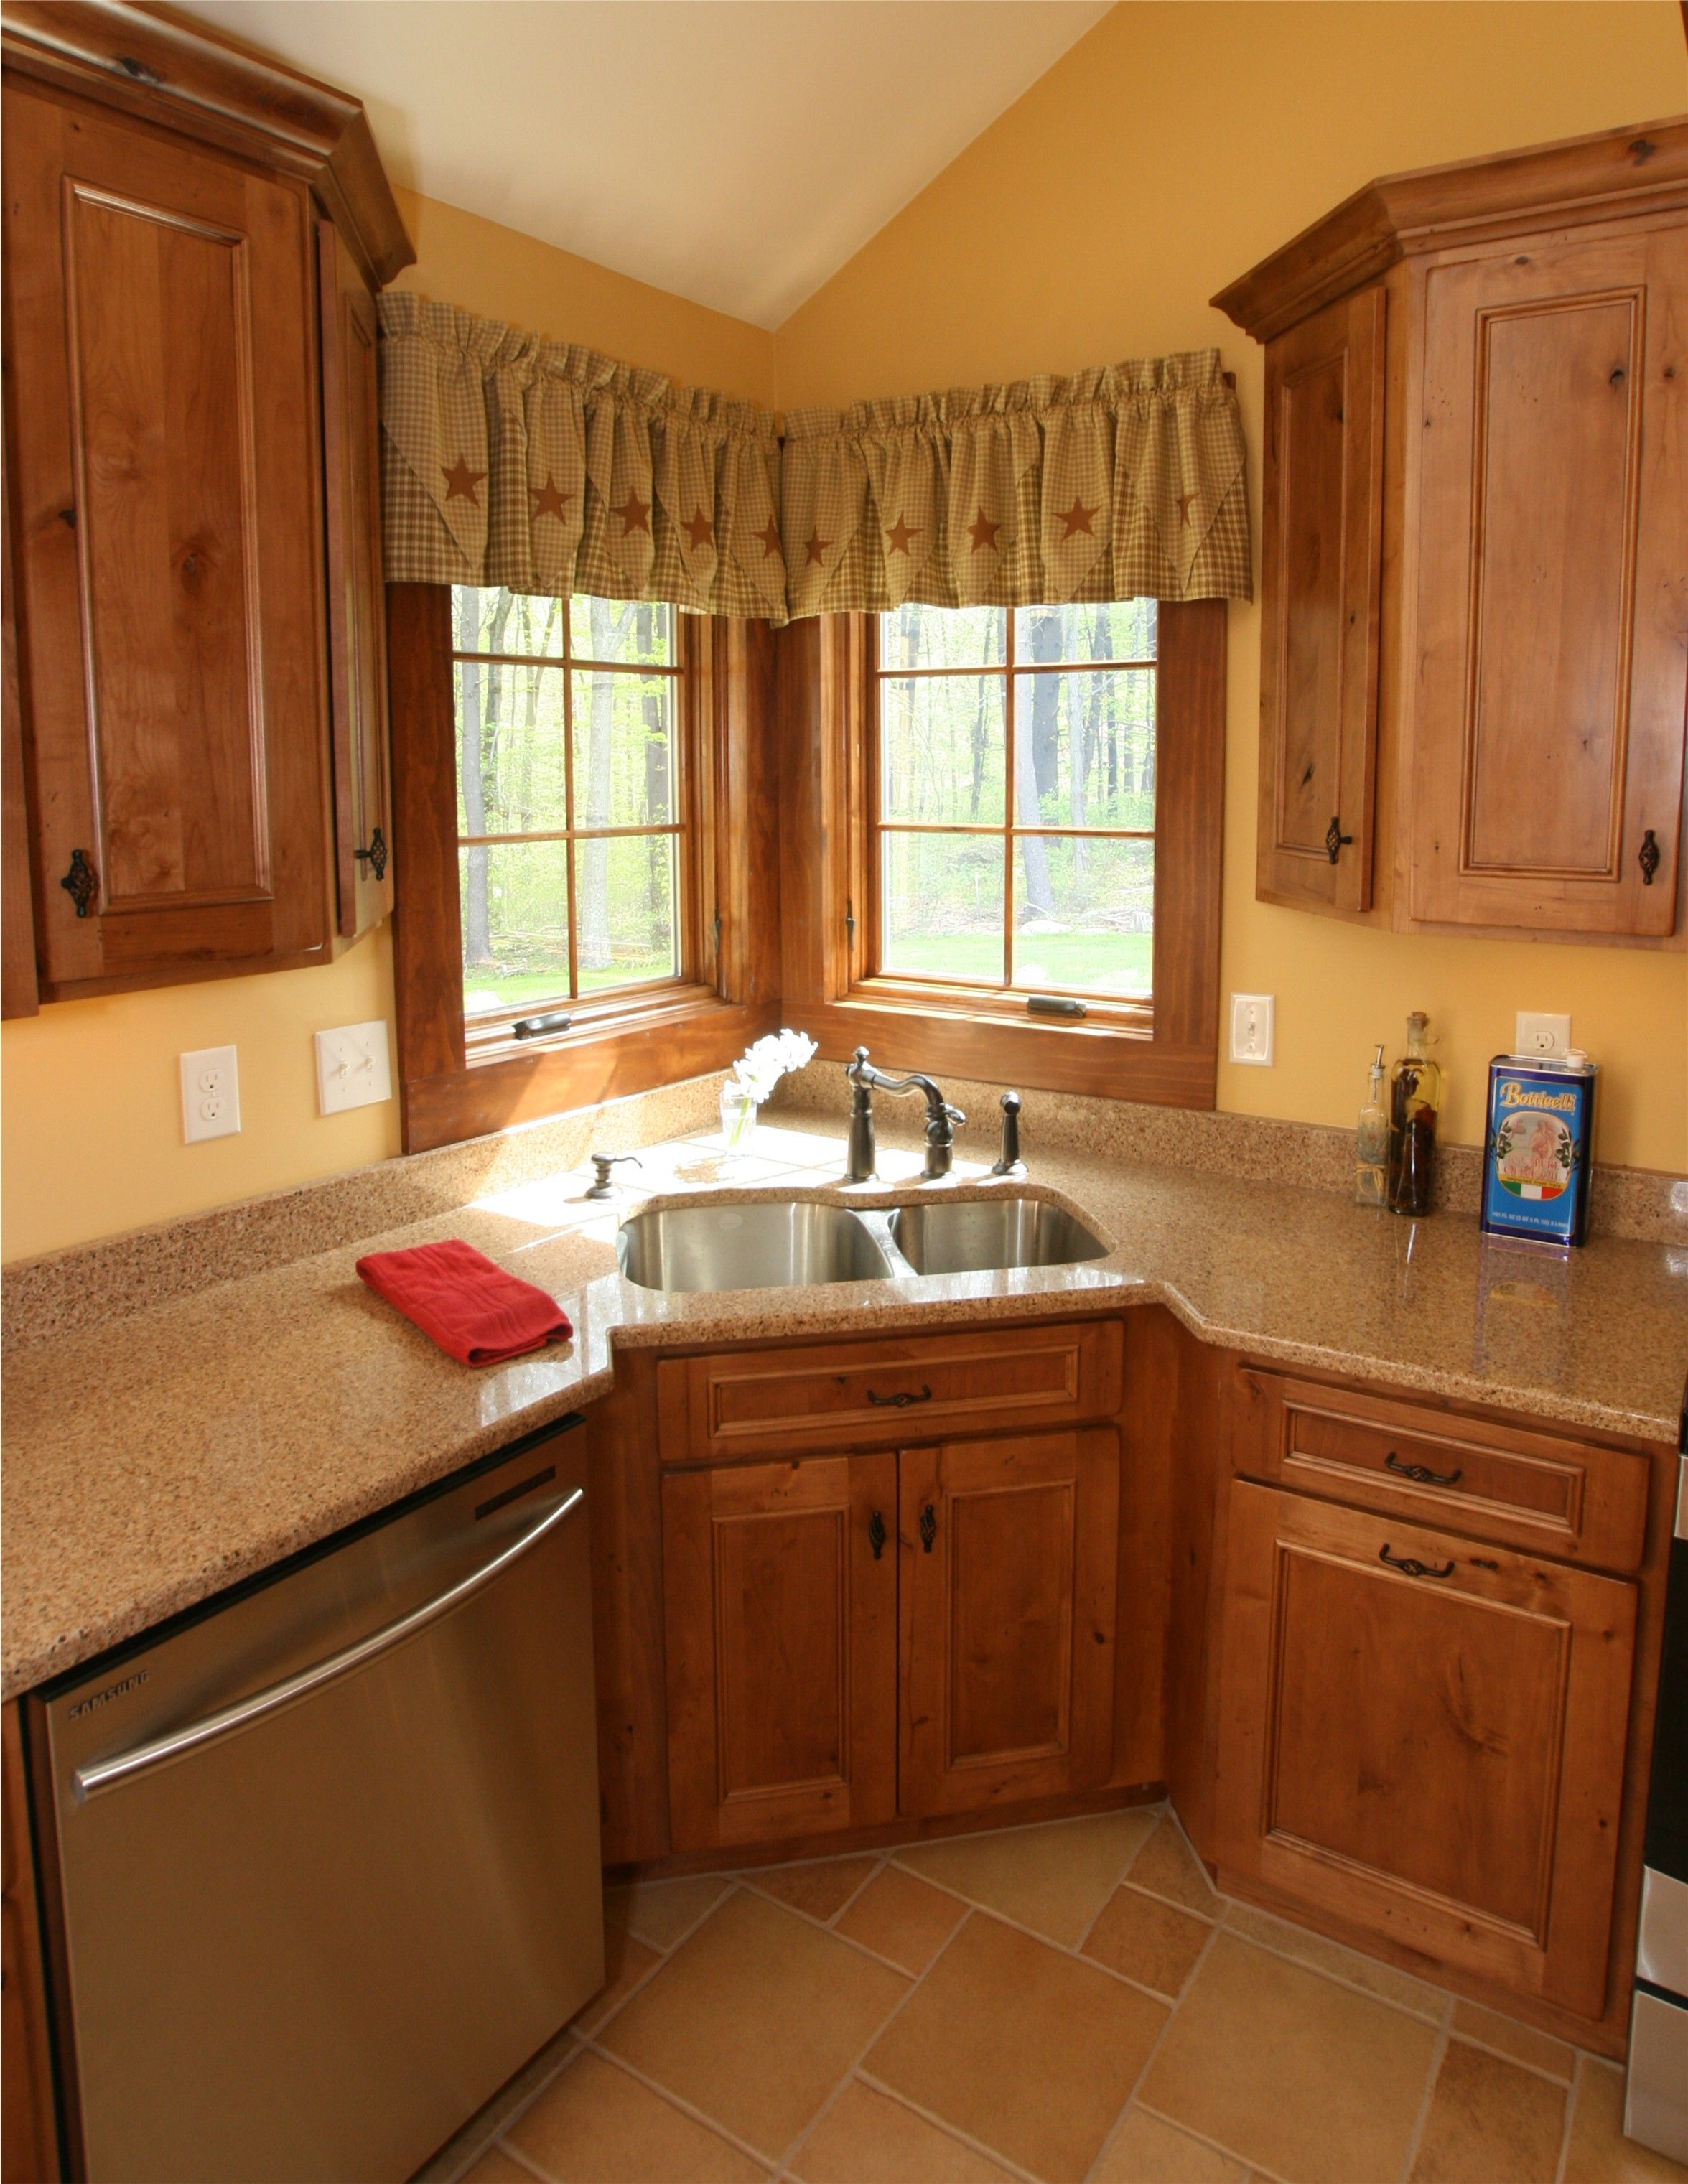 This Is A Beautiful Showplace Kitchen Featuring Our Rustic